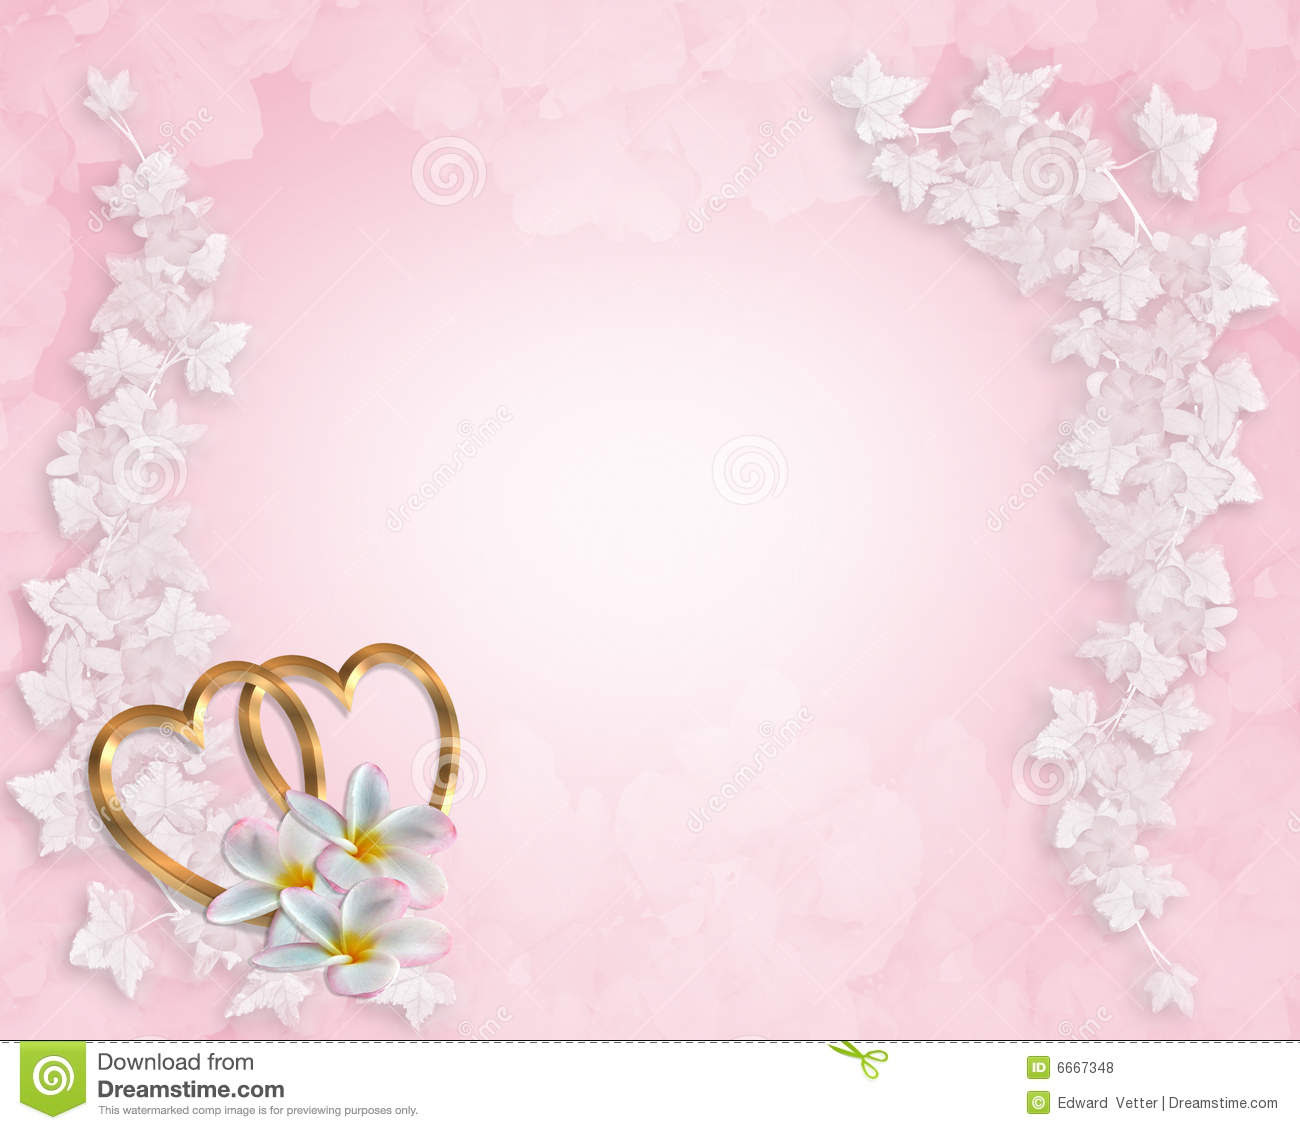 Expensive Wedding Invitations: Expensive Wedding Invitation For You: Background Designs